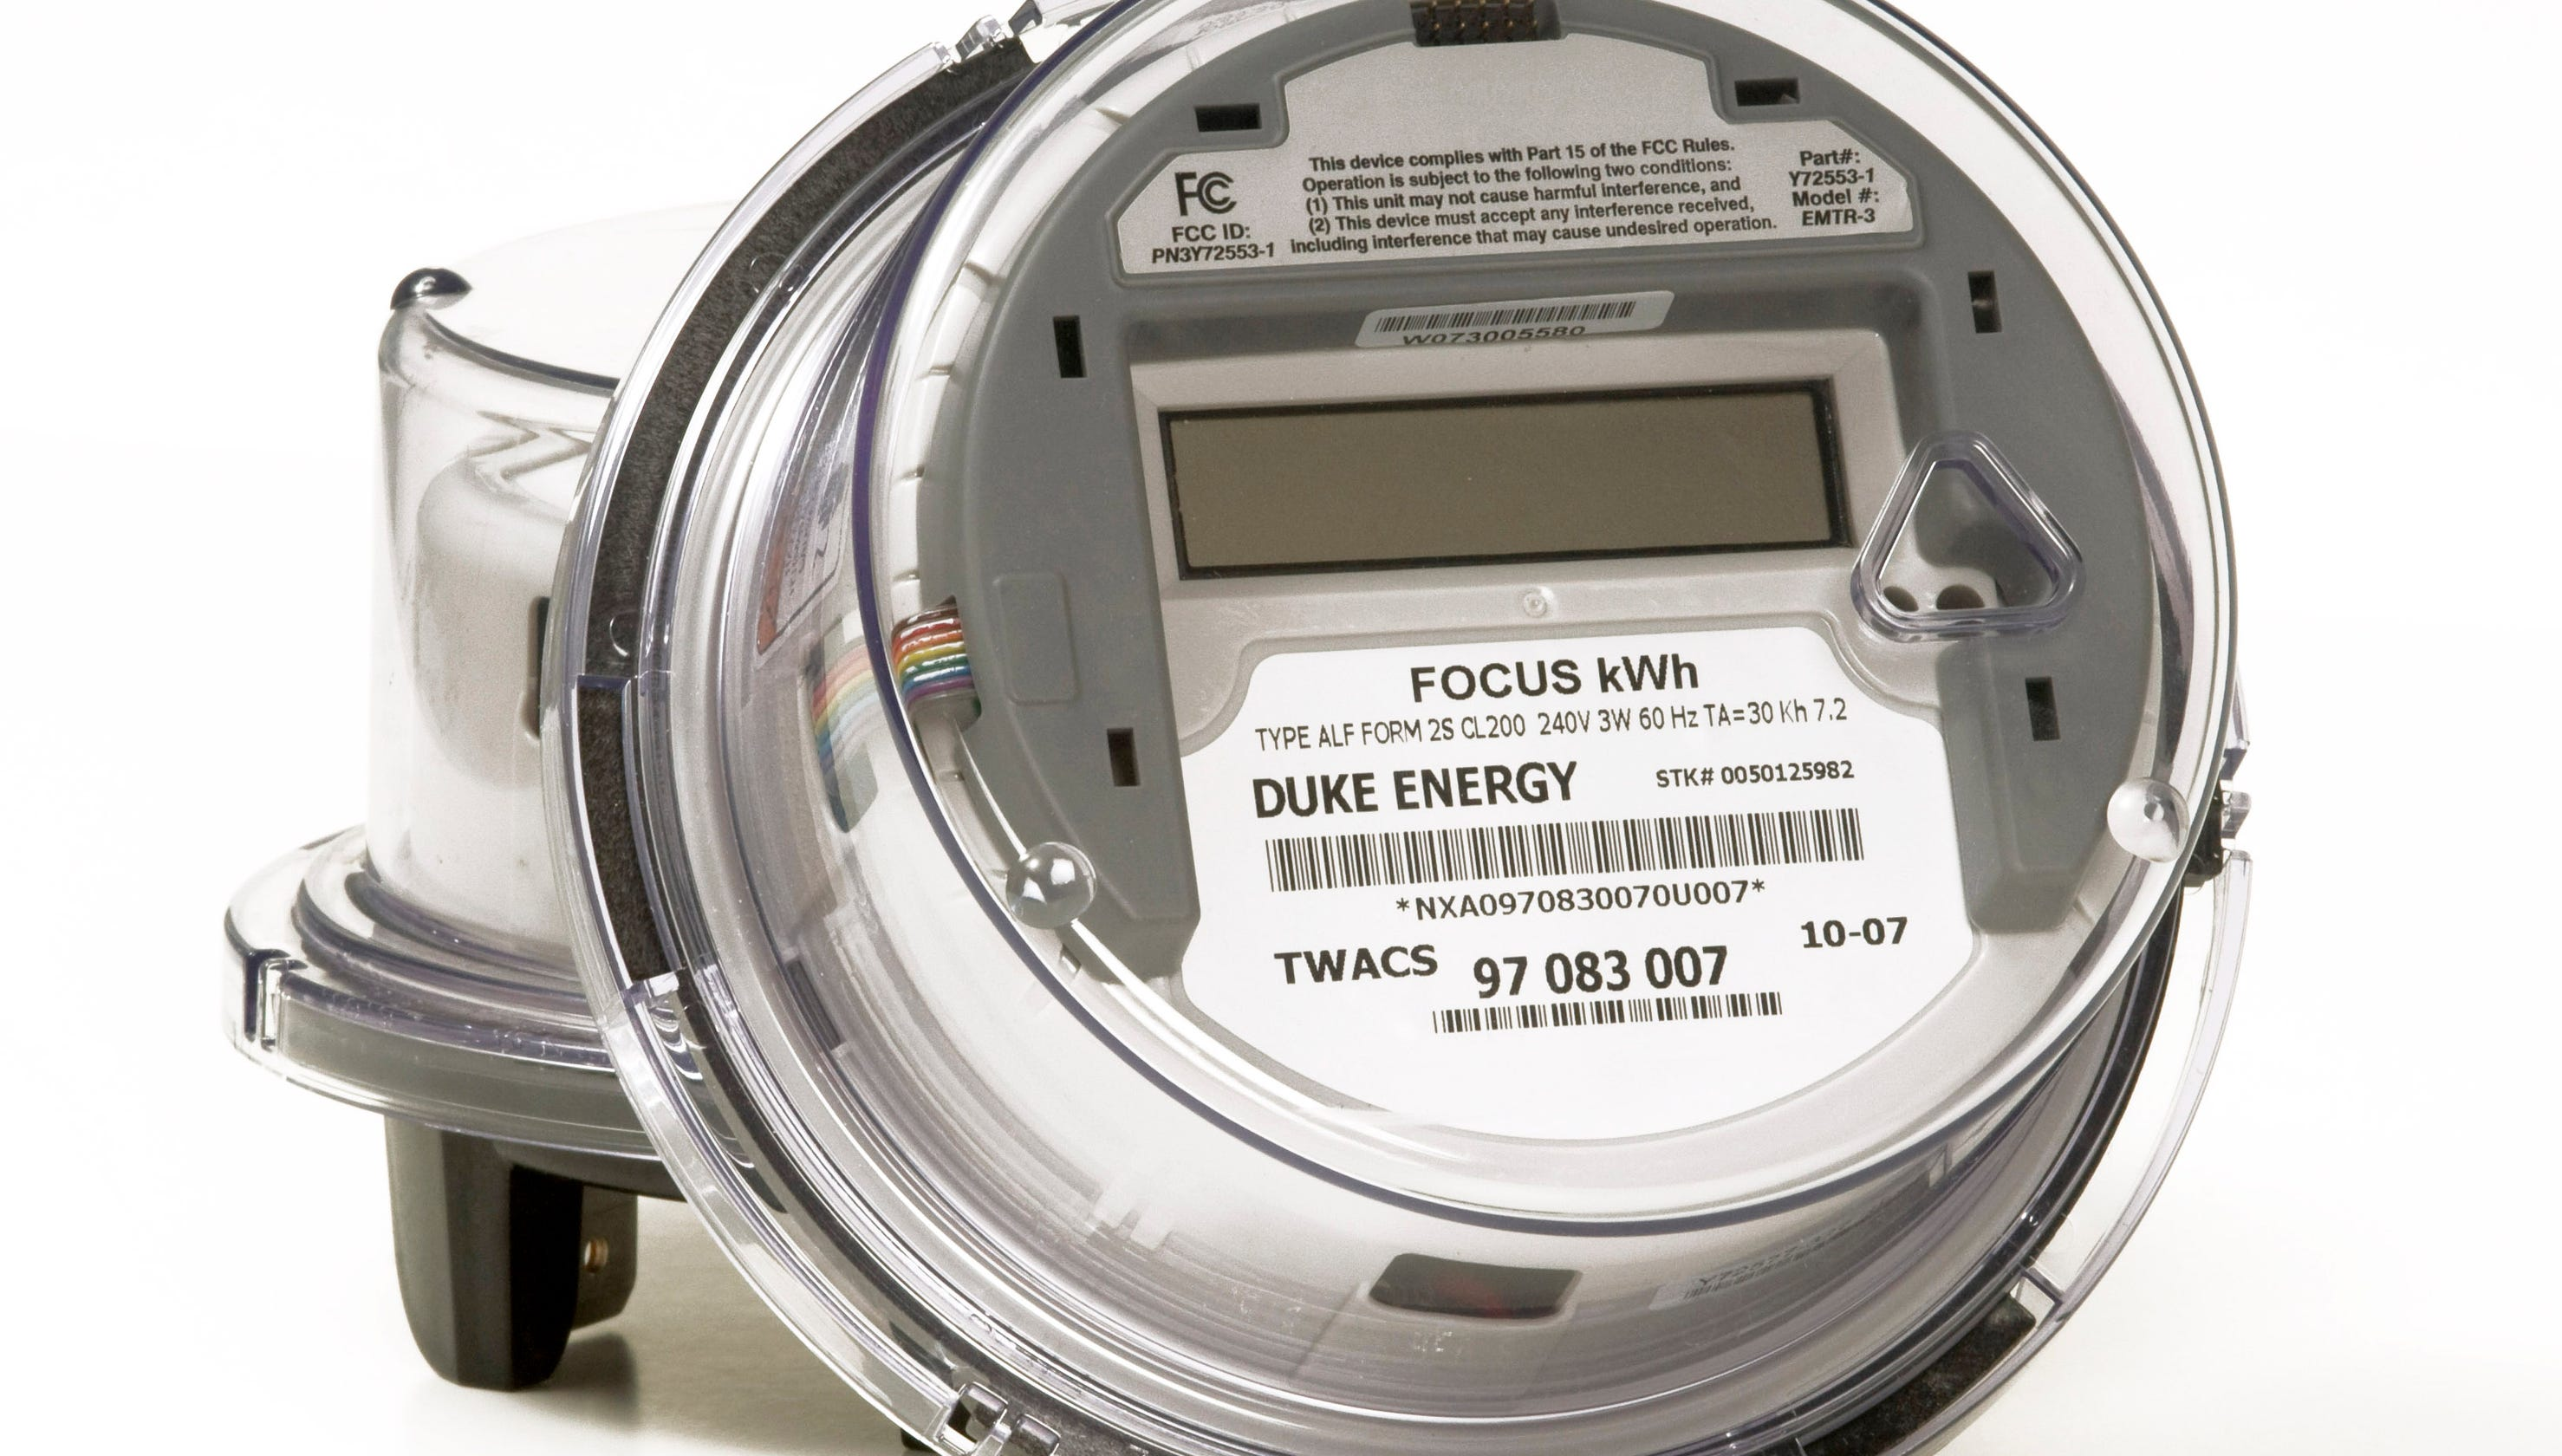 Are Duke Energy 'smart meters' really that smart? Ask Answer